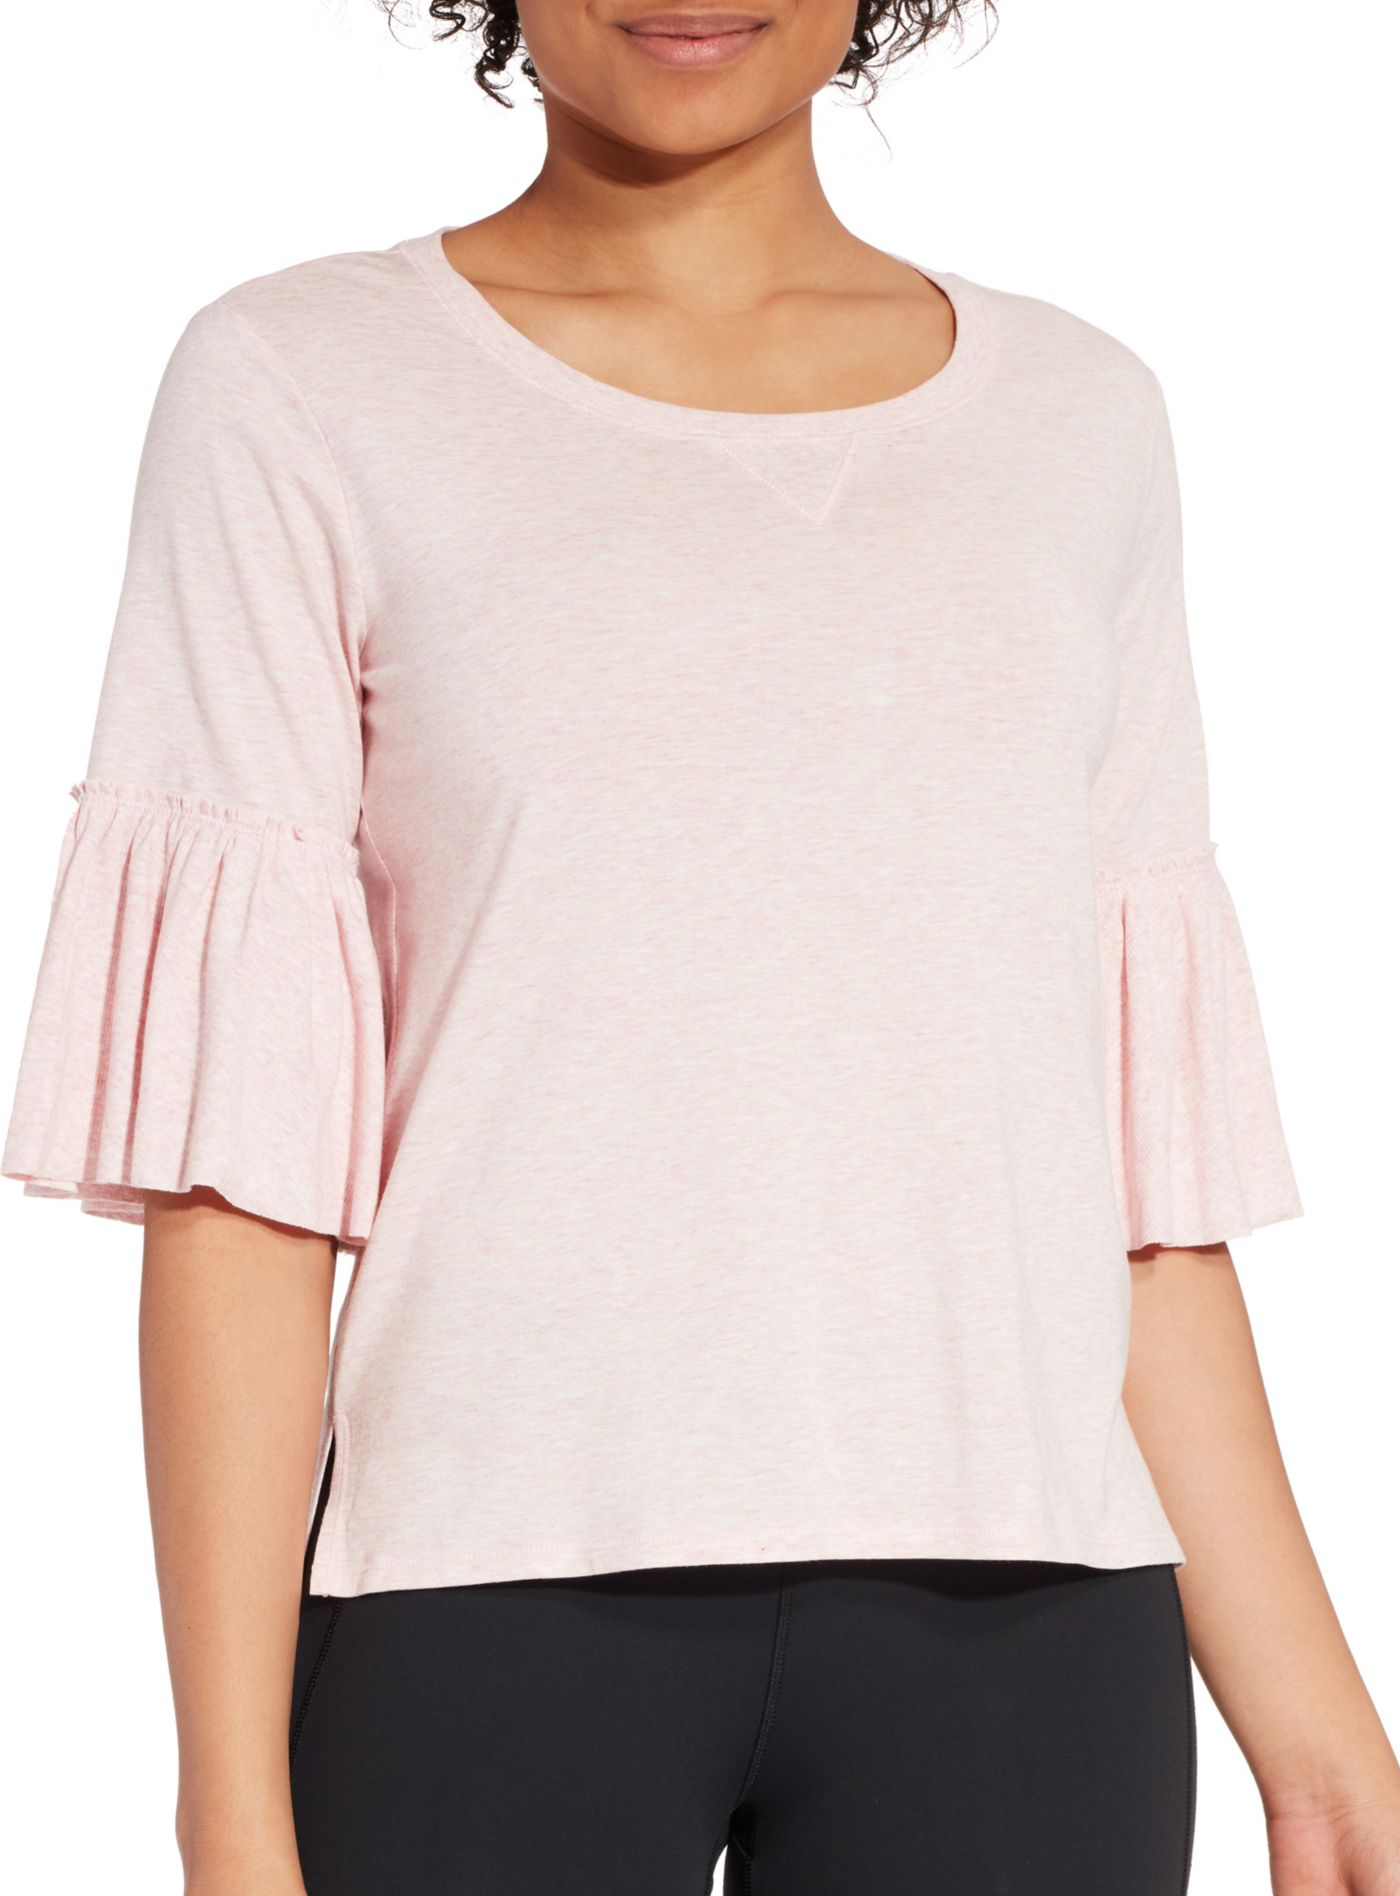 CALIA by Carrie Underwood Women's Heather Ruffle T-Shirt